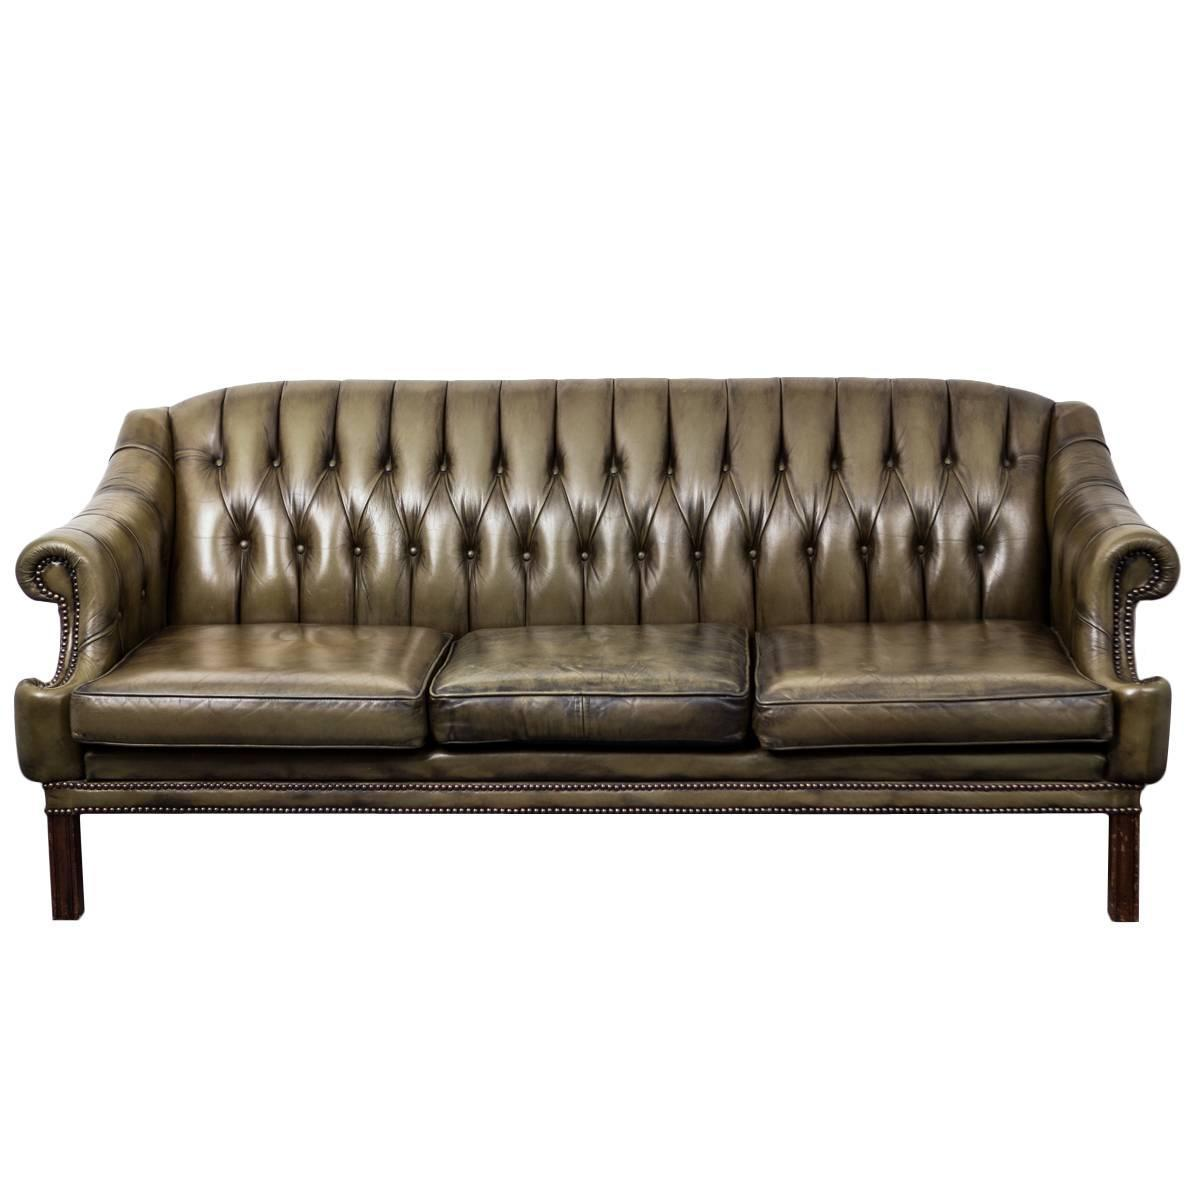 Green leather sofa england at 1stdibs for England leather sectional sofa